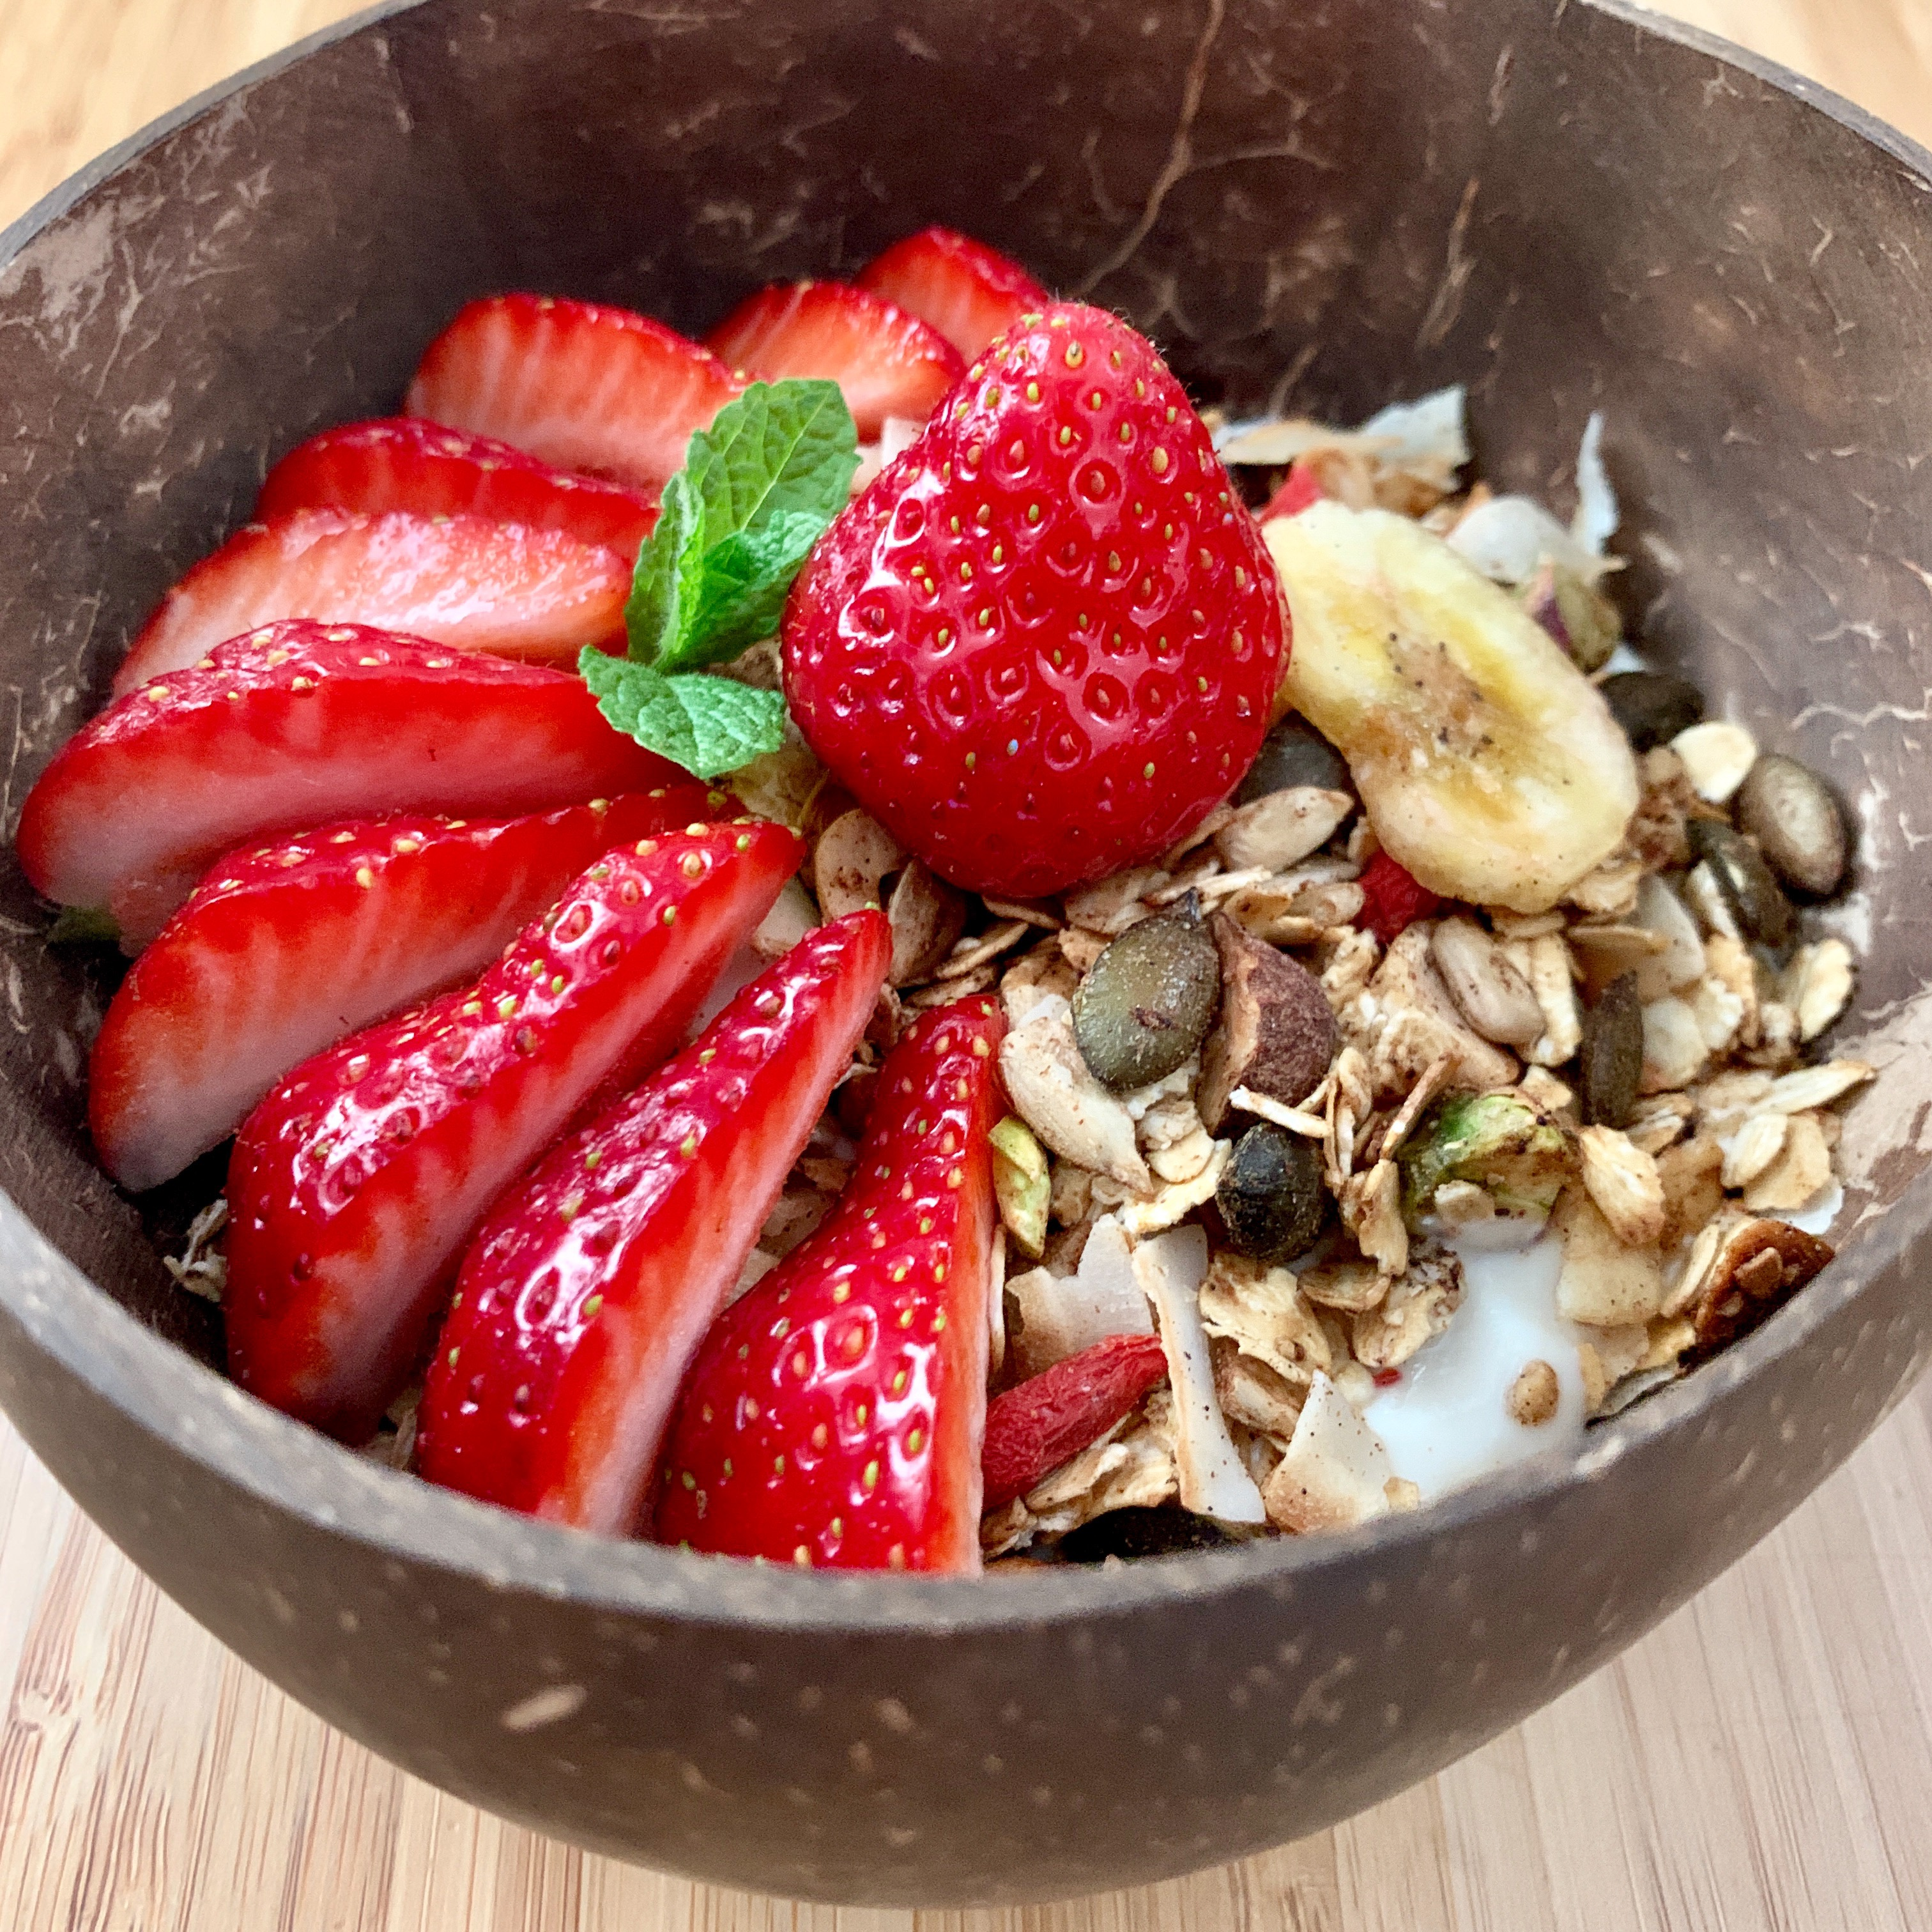 fraises 1 - This is an excuse to eat strawberries. (granola recipe)